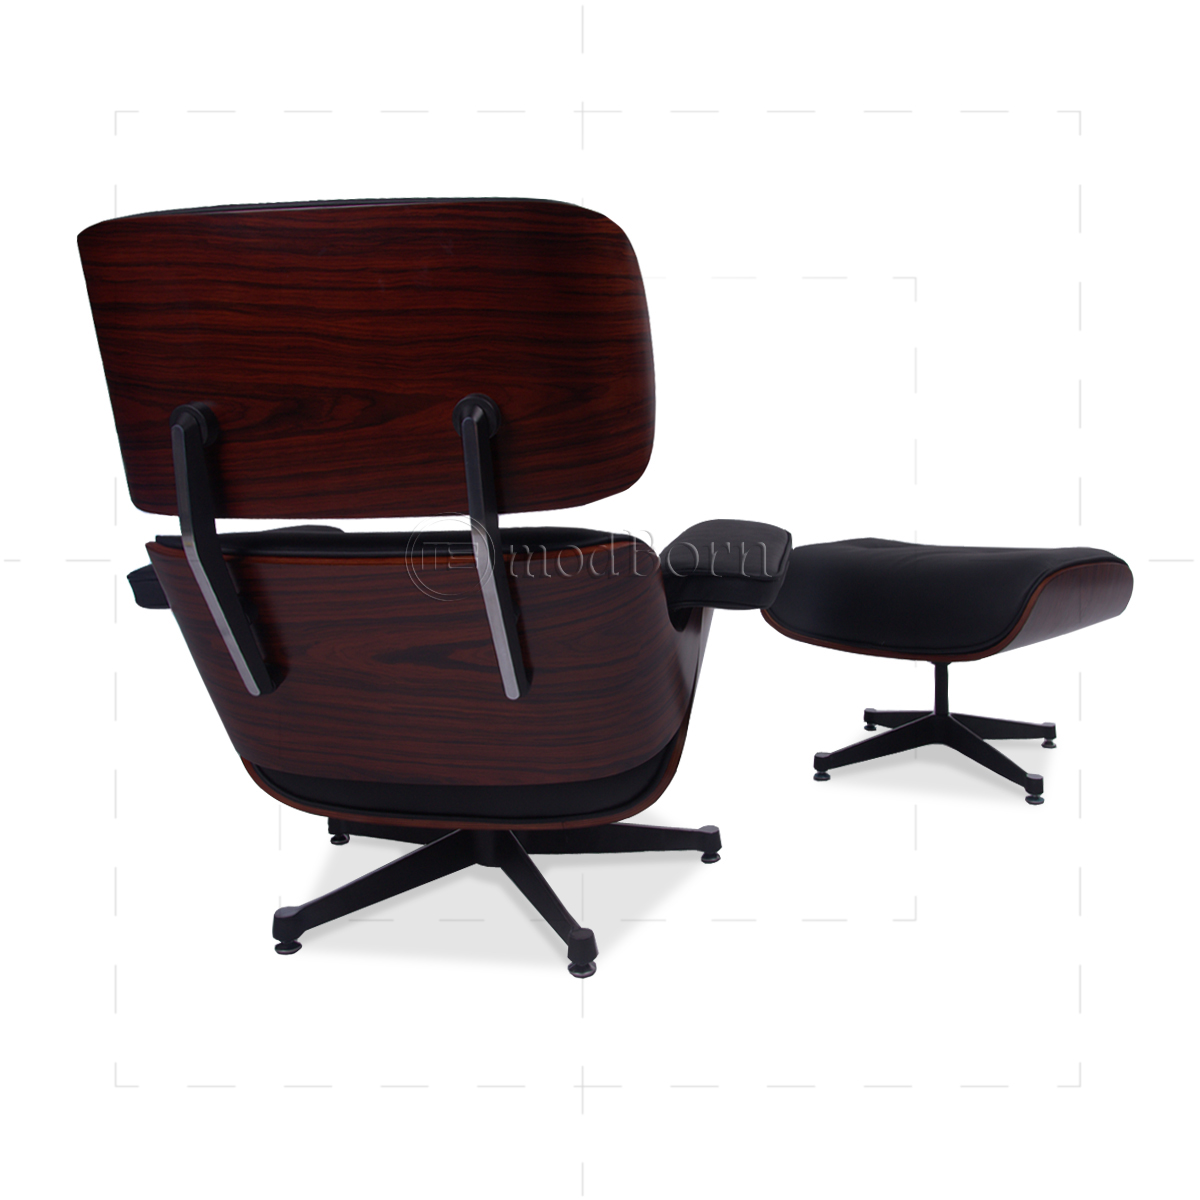 Eames style lounge chair and ottoman black leather for Eames replica